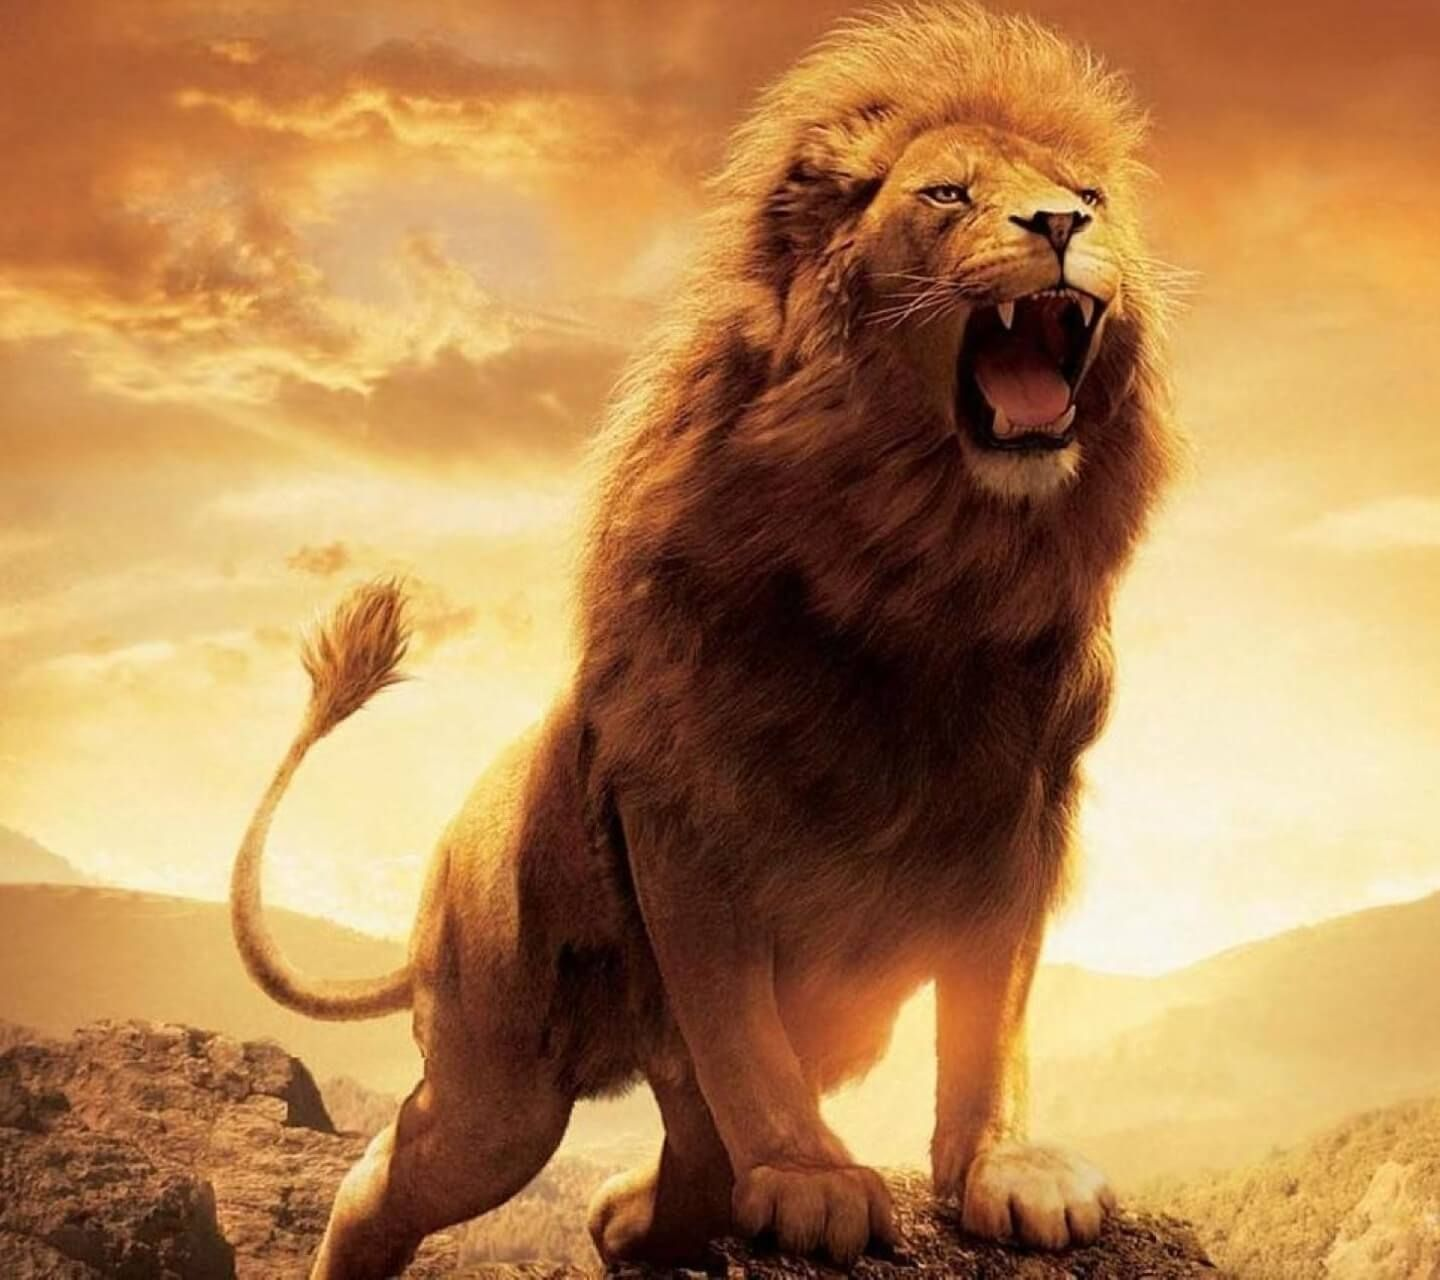 Lion Hd Wallpapers Lion Hd Pictures Free Download Hd 1920 1080 Lion Images Lion Hd Wallpaper Lion Wallpaper